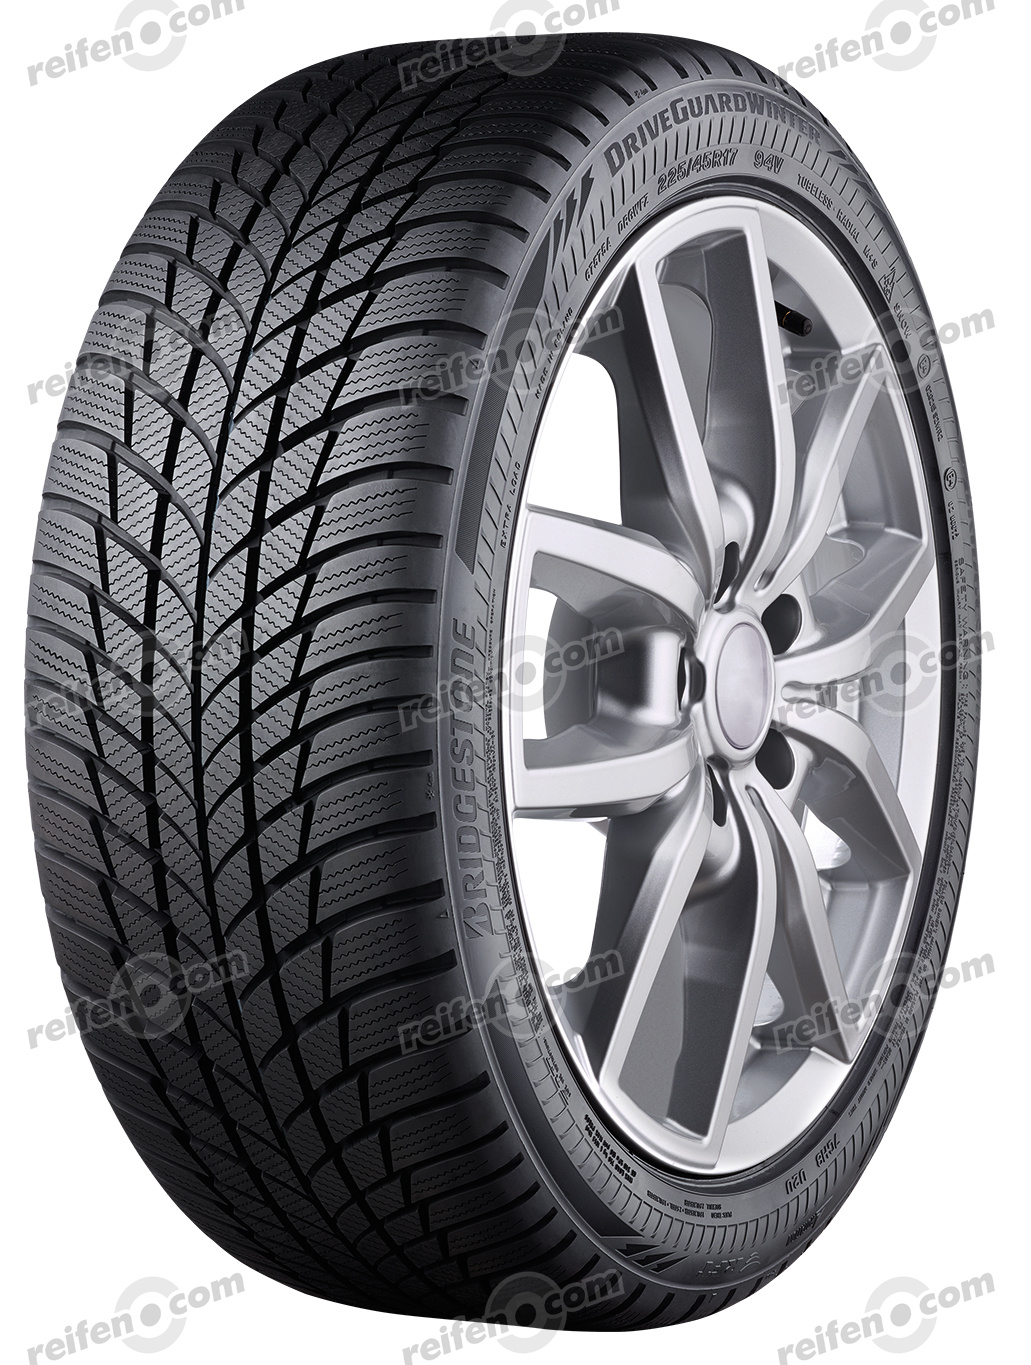 205/55 R16 94V DriveGuard Winter RFT XL  DriveGuard Winter RFT XL